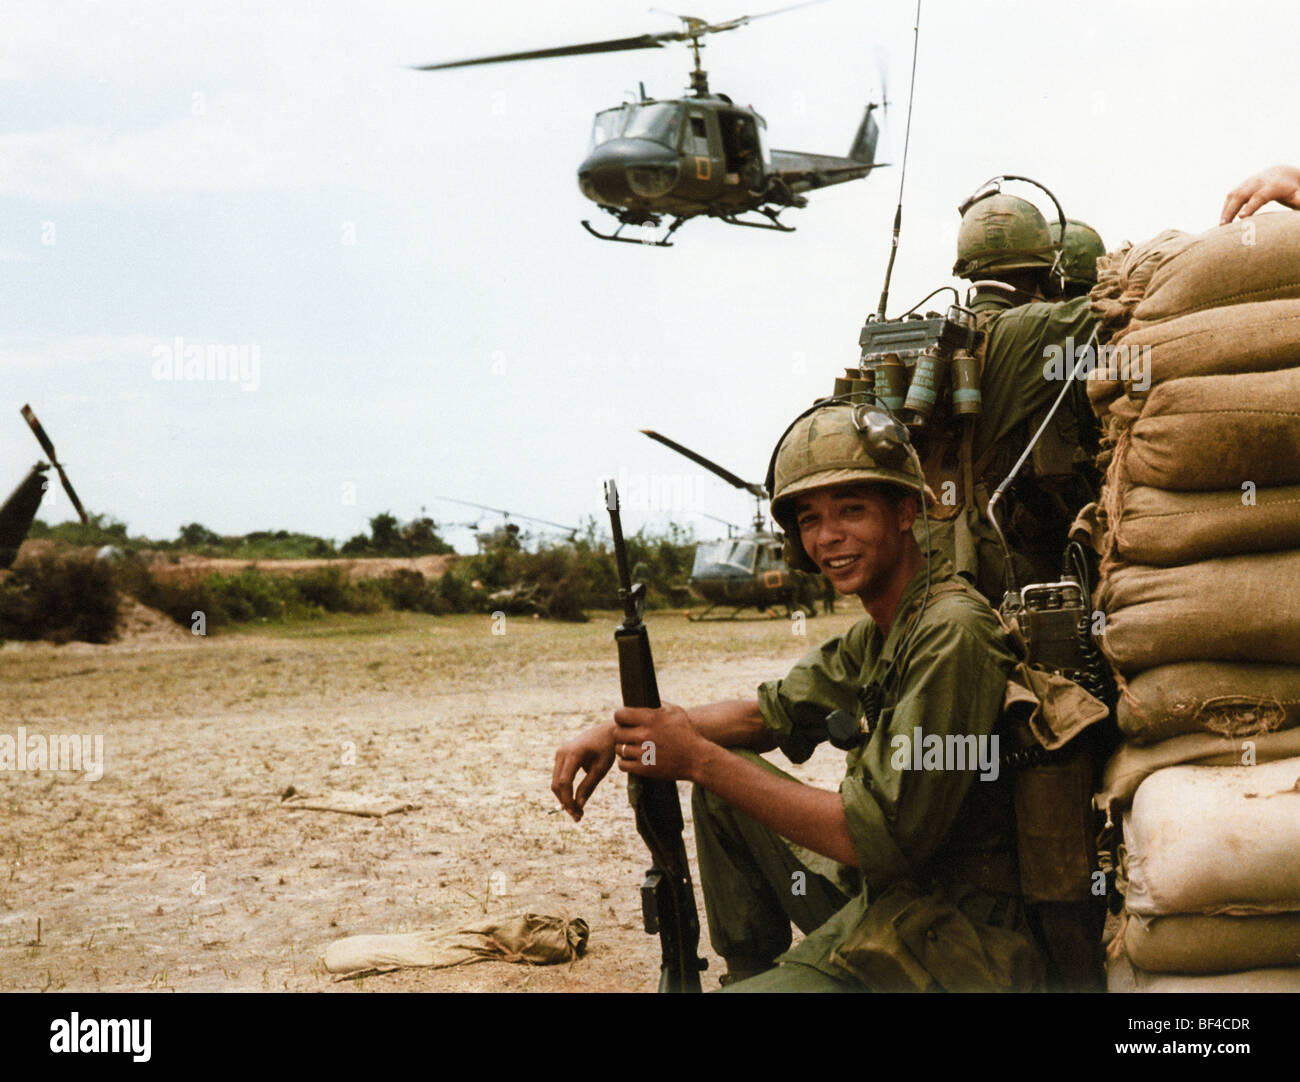 A Huey gunship helicopter of B Troop, 1st Squadron, 9th Cavalry prepares to land while soldiers wait at an LZ. - Stock Image